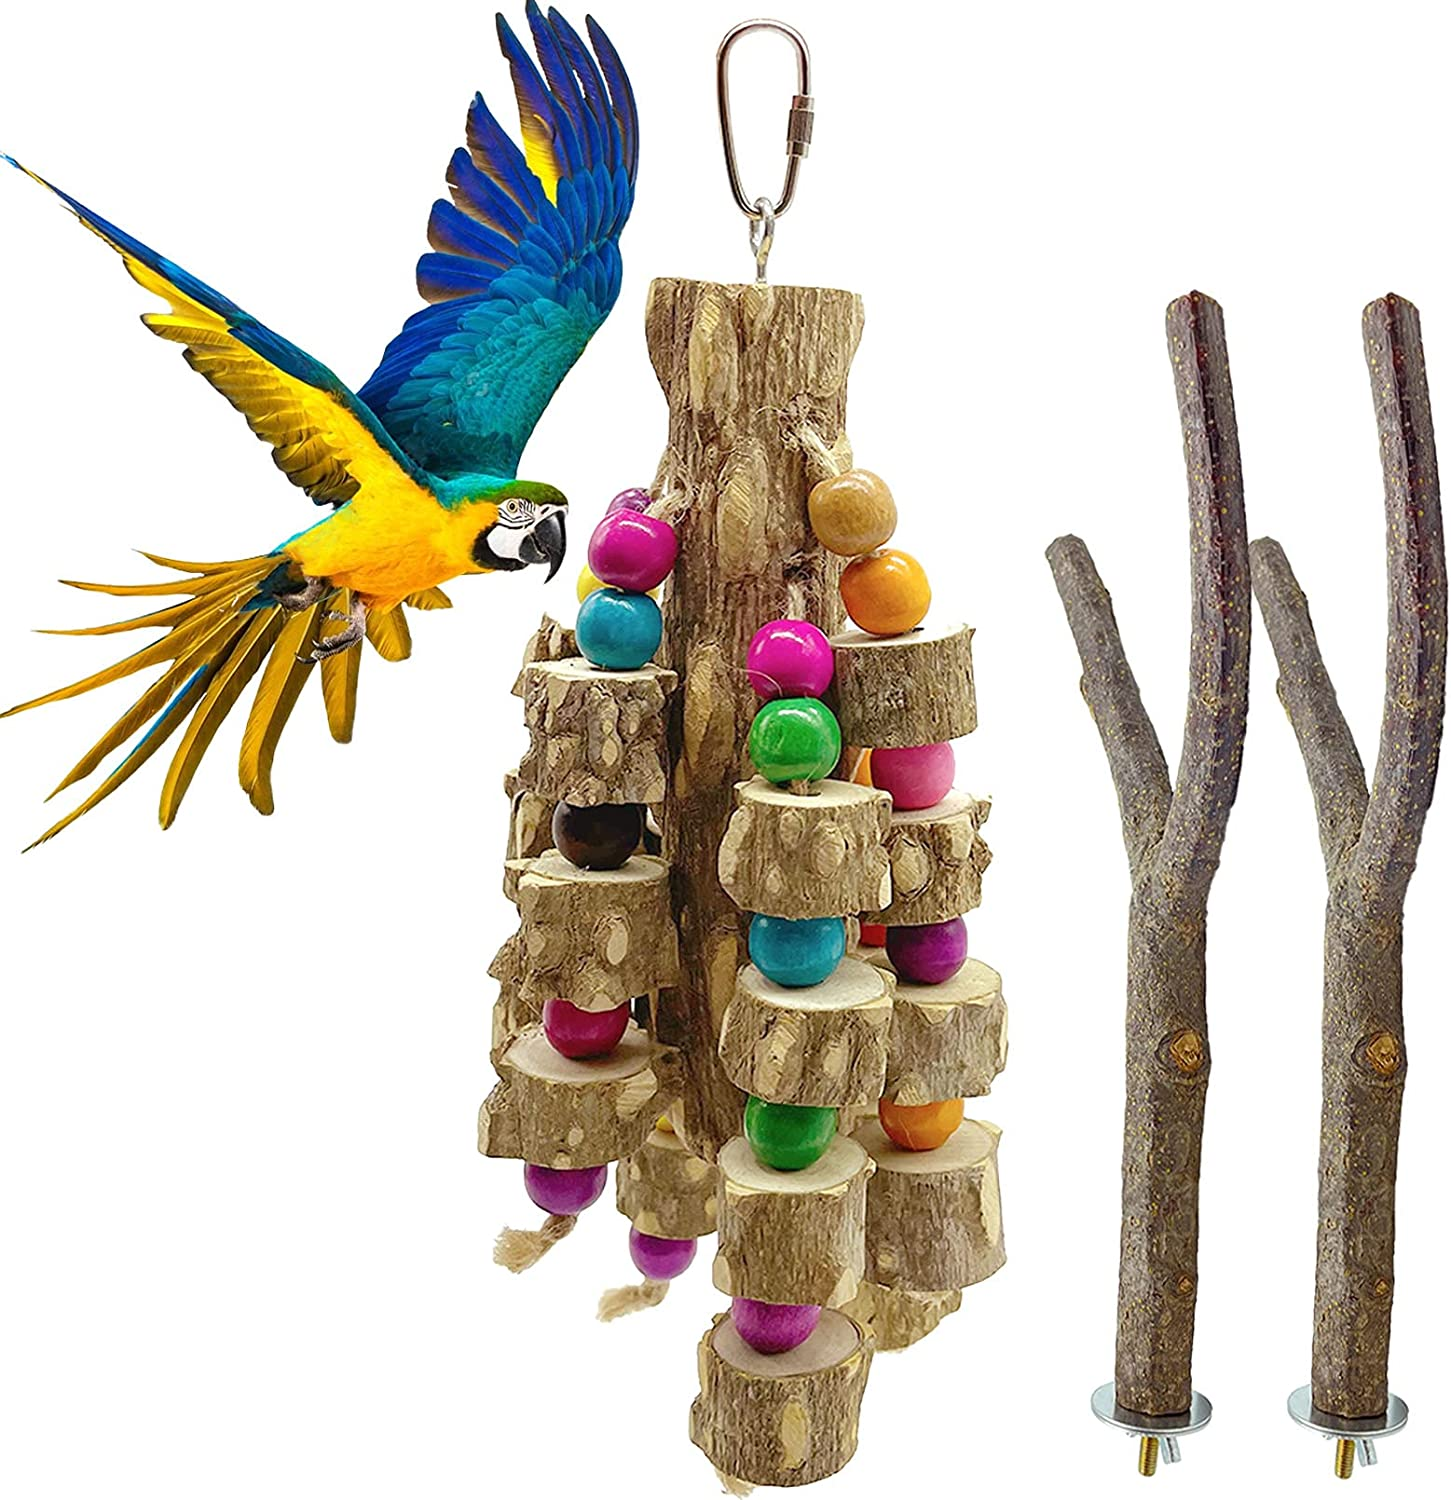 Hamiledyi Wood Parrot Some reservation Super special price Chewing Toy Bird Wooden Natural Multicolor